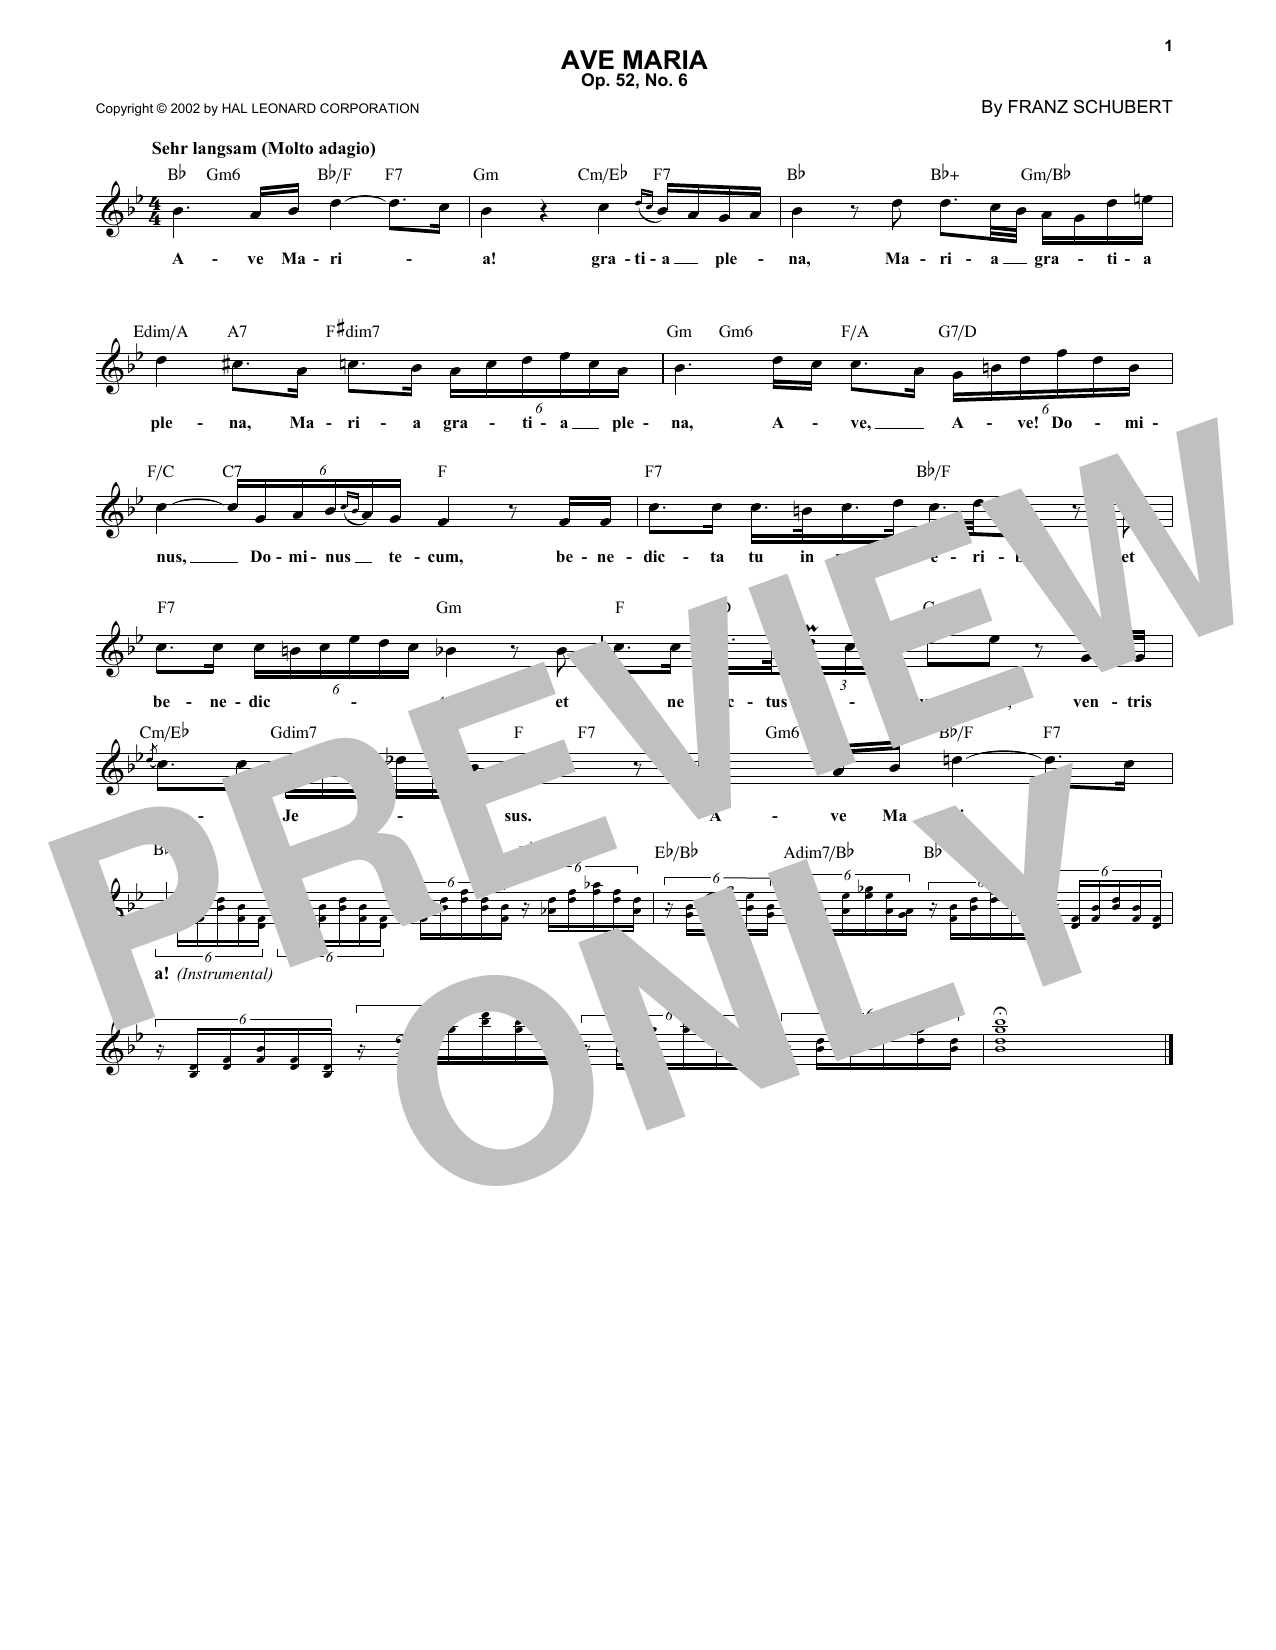 Ave Maria, Op. 52, No. 6 (Lead Sheet / Fake Book)